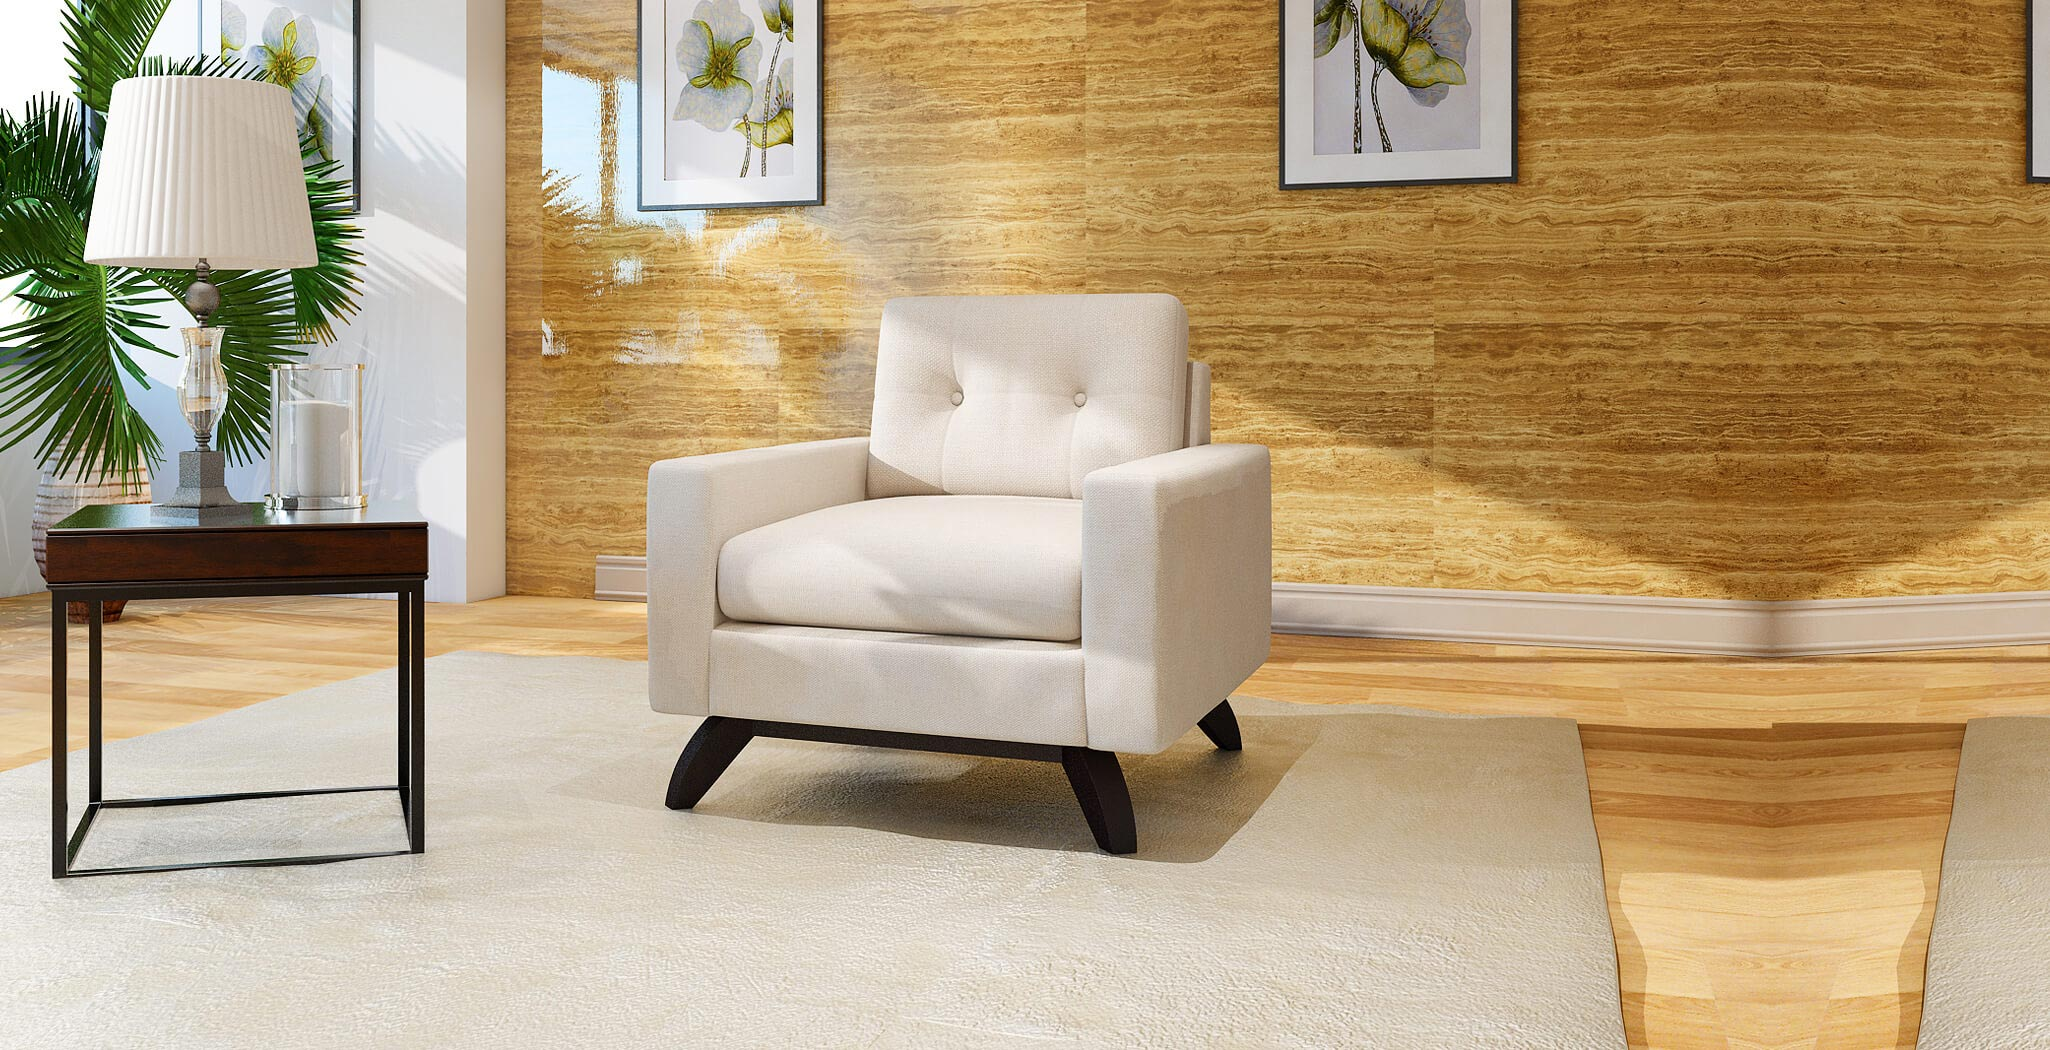 milan chair premium furiture DreamSofa